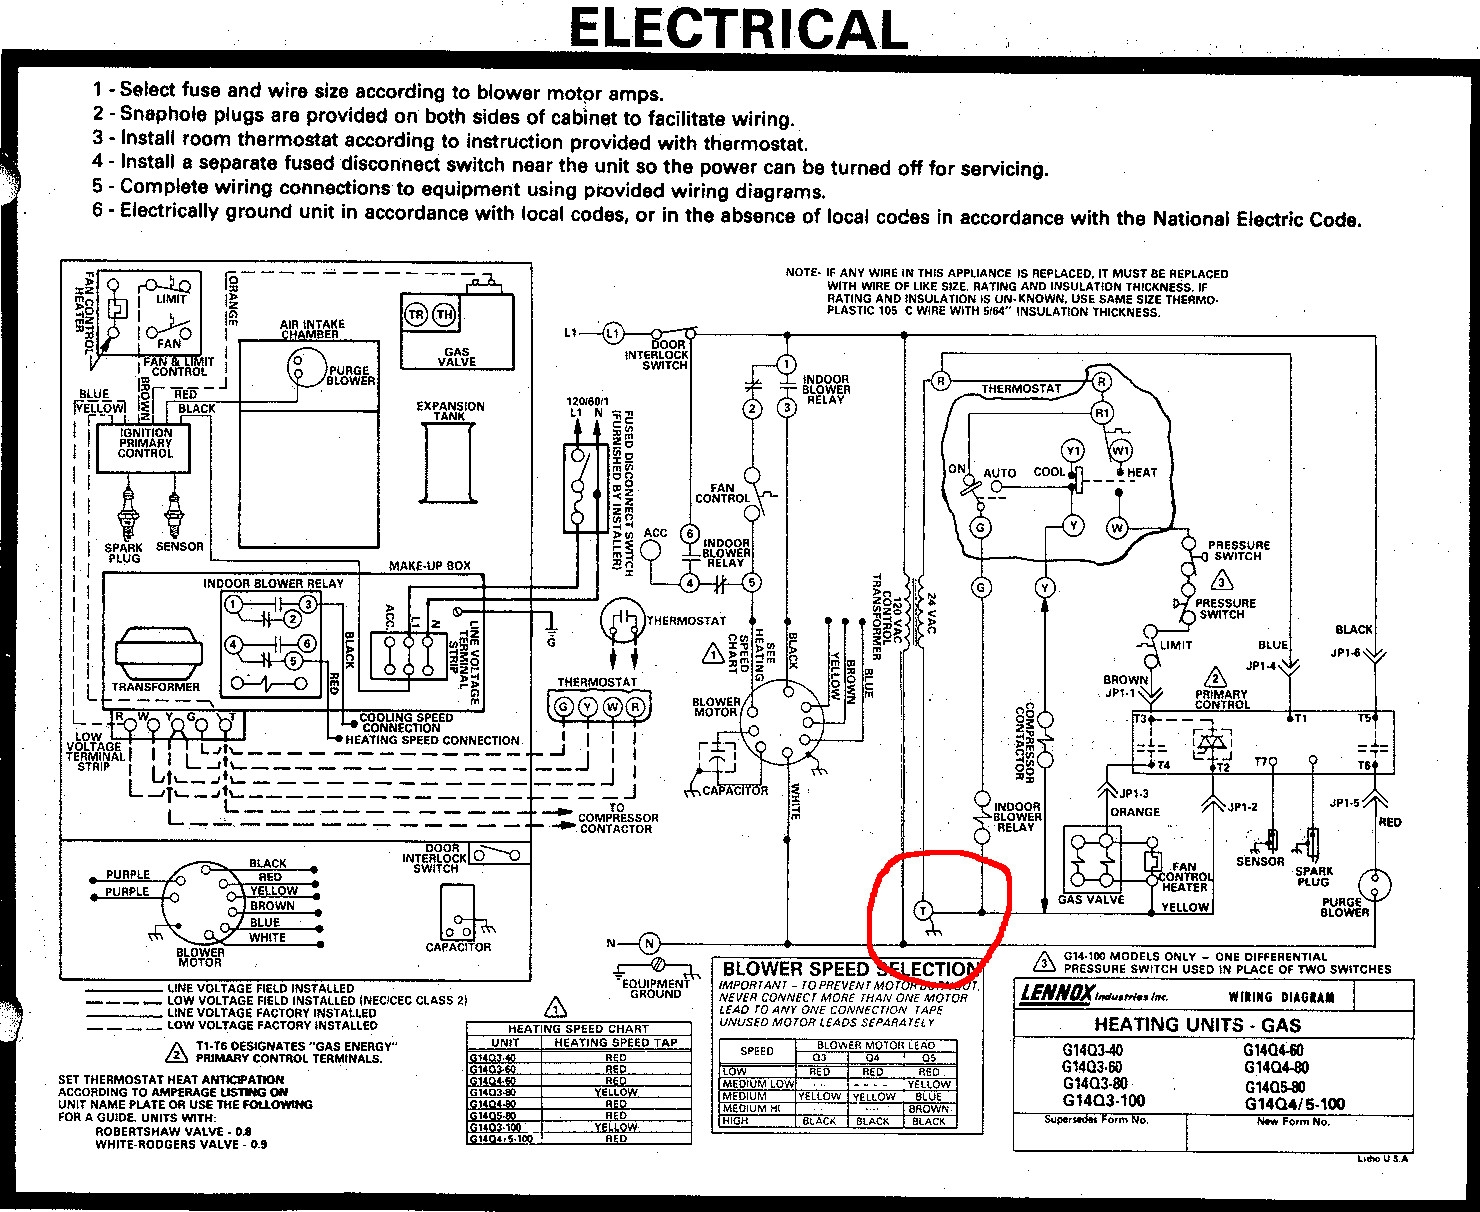 hight resolution of lennox heater wiring diagram wiring diagrams konsult lennox heater wiring diagram lennox heater wiring diagram